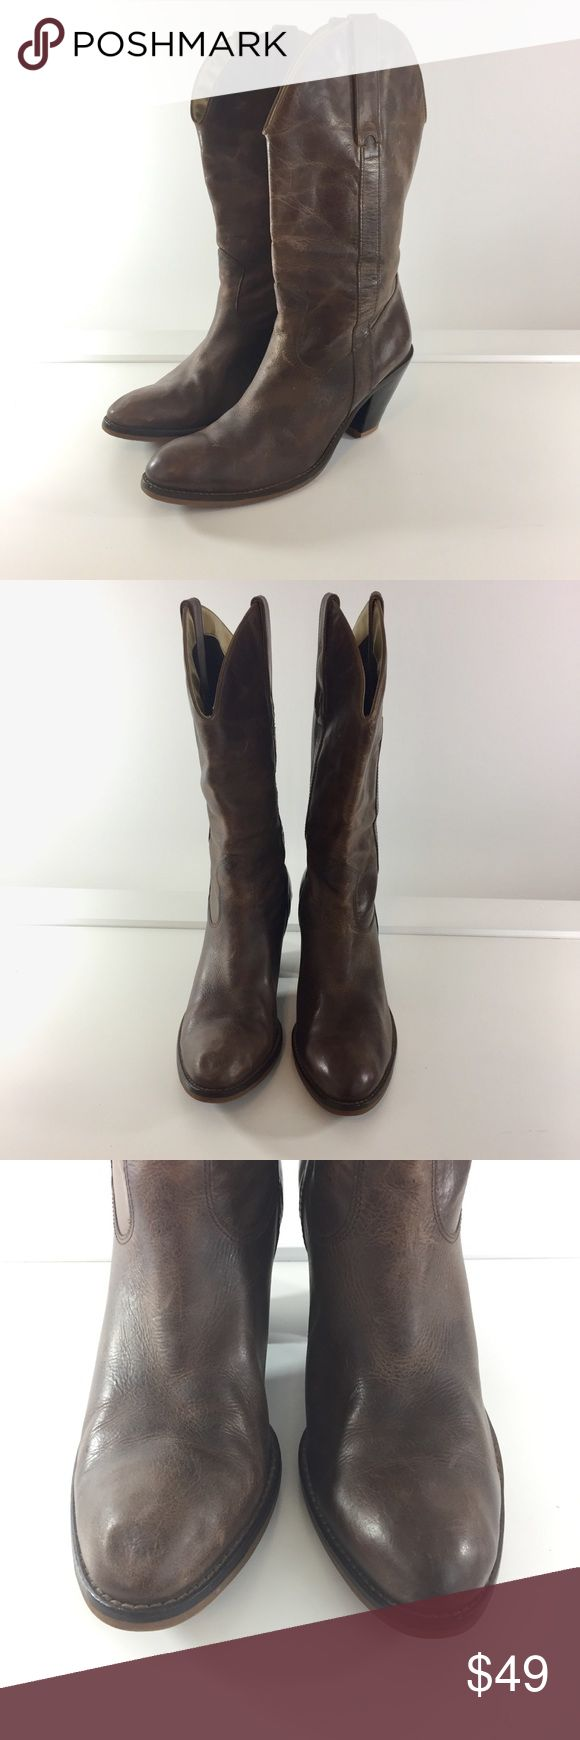 "Jessica Simpson 8-8.5 Brown Western Cowboy Boots Jessica Simpson 8-8.5 Brown Western Cowboy Boots - Boots do not have a size indicated on them.  They are close to an 8 or 8.5 in Women's shoes.  I wear and 8/8.5 in her shoes and these fit me. - Boots have been resoled and have new heel taps. - Right boot toe has indentation on the toe area and boots have scuffs/scrapes/scratches  APPROX MEASUREMENTS: 11.5"" SHAFT, 5.5"" LOWER SHAFT, 6.75"" UPPER SHAFT, 3"" HEEL,  9.5"" - 9.75"" INSOLE - INSOLE IS…"